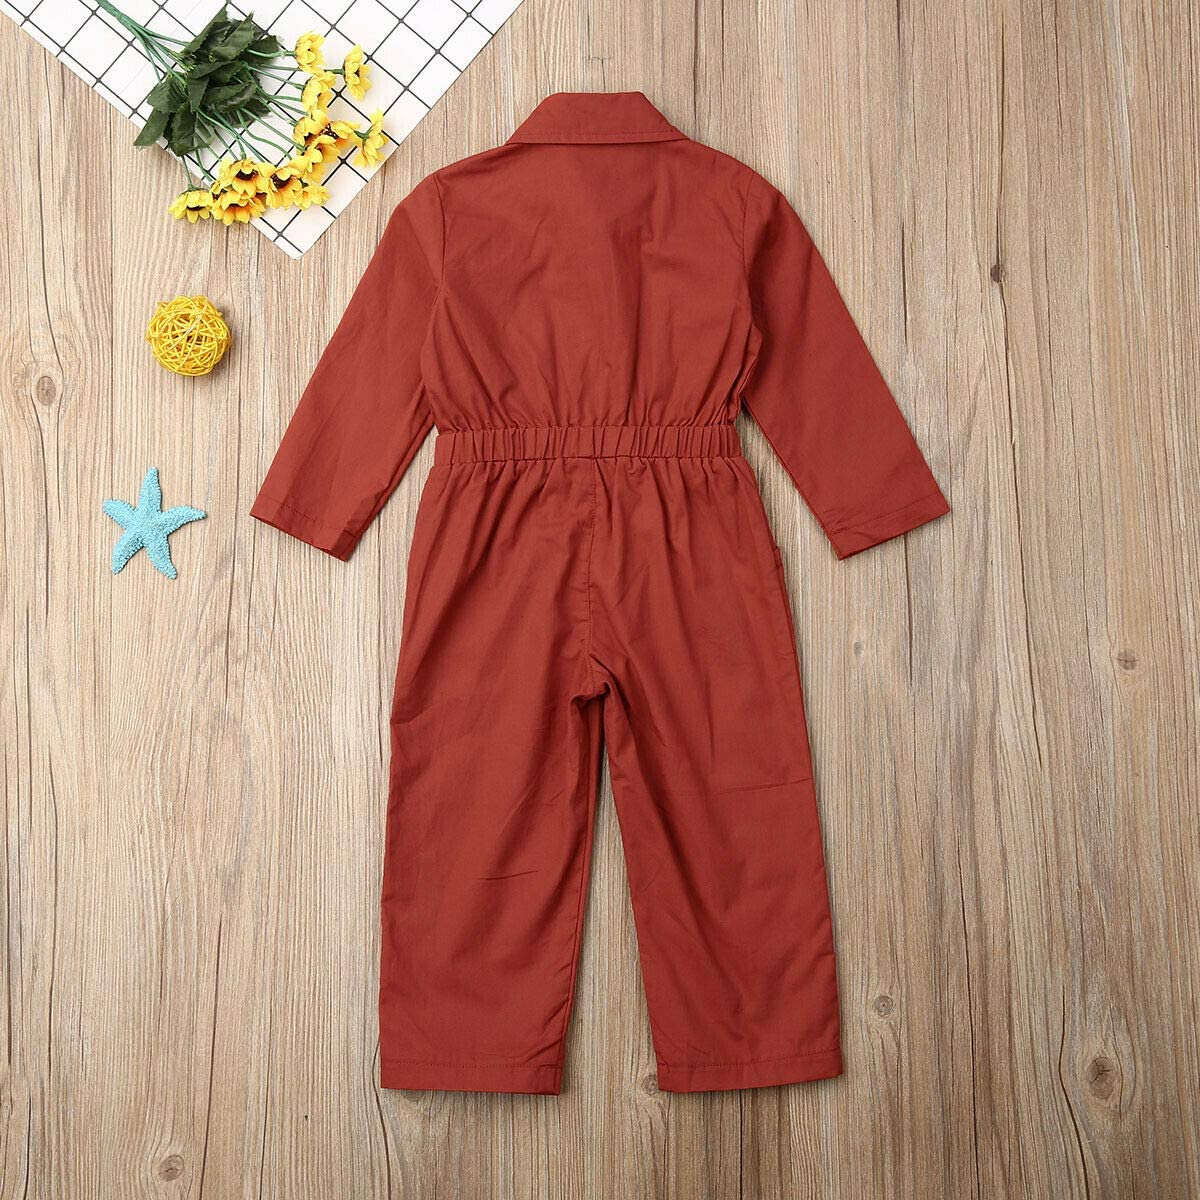 Toddler Baby Jumpsuit Solid Color Button Romper Bodysuit Cool Kids Fall Winter One-Piece Coverall Clothes Outfits